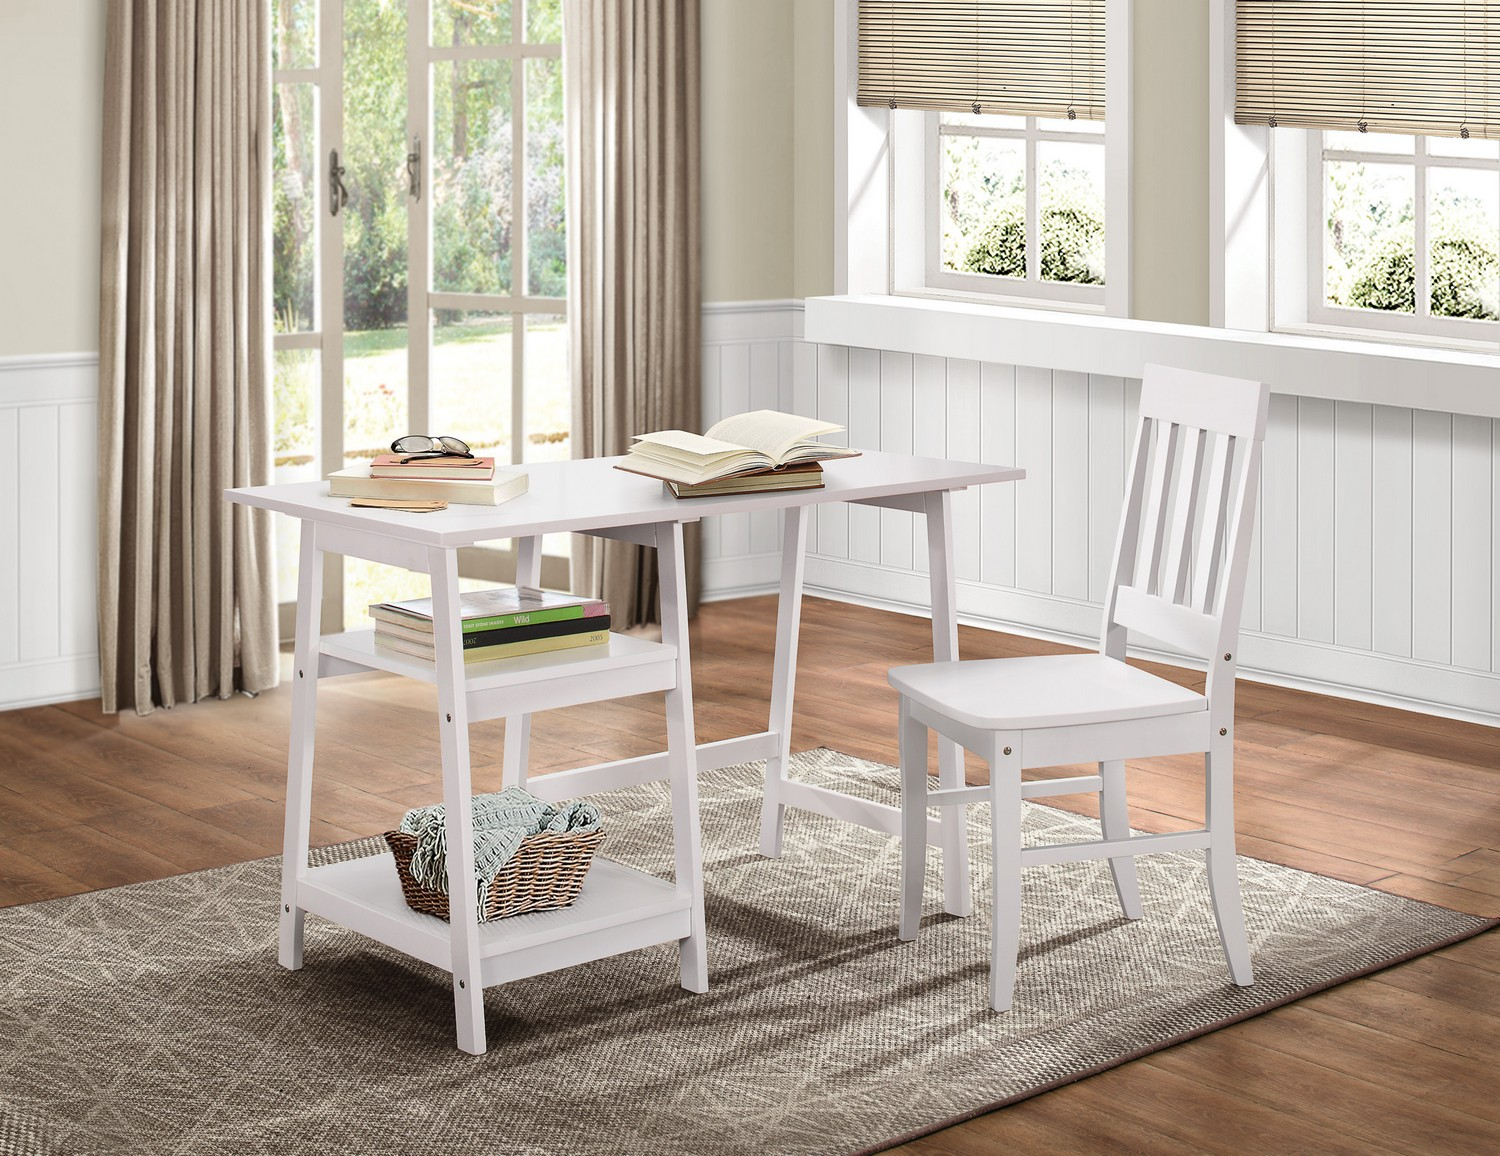 Homelegance Daily Writing Desk and Chair - White